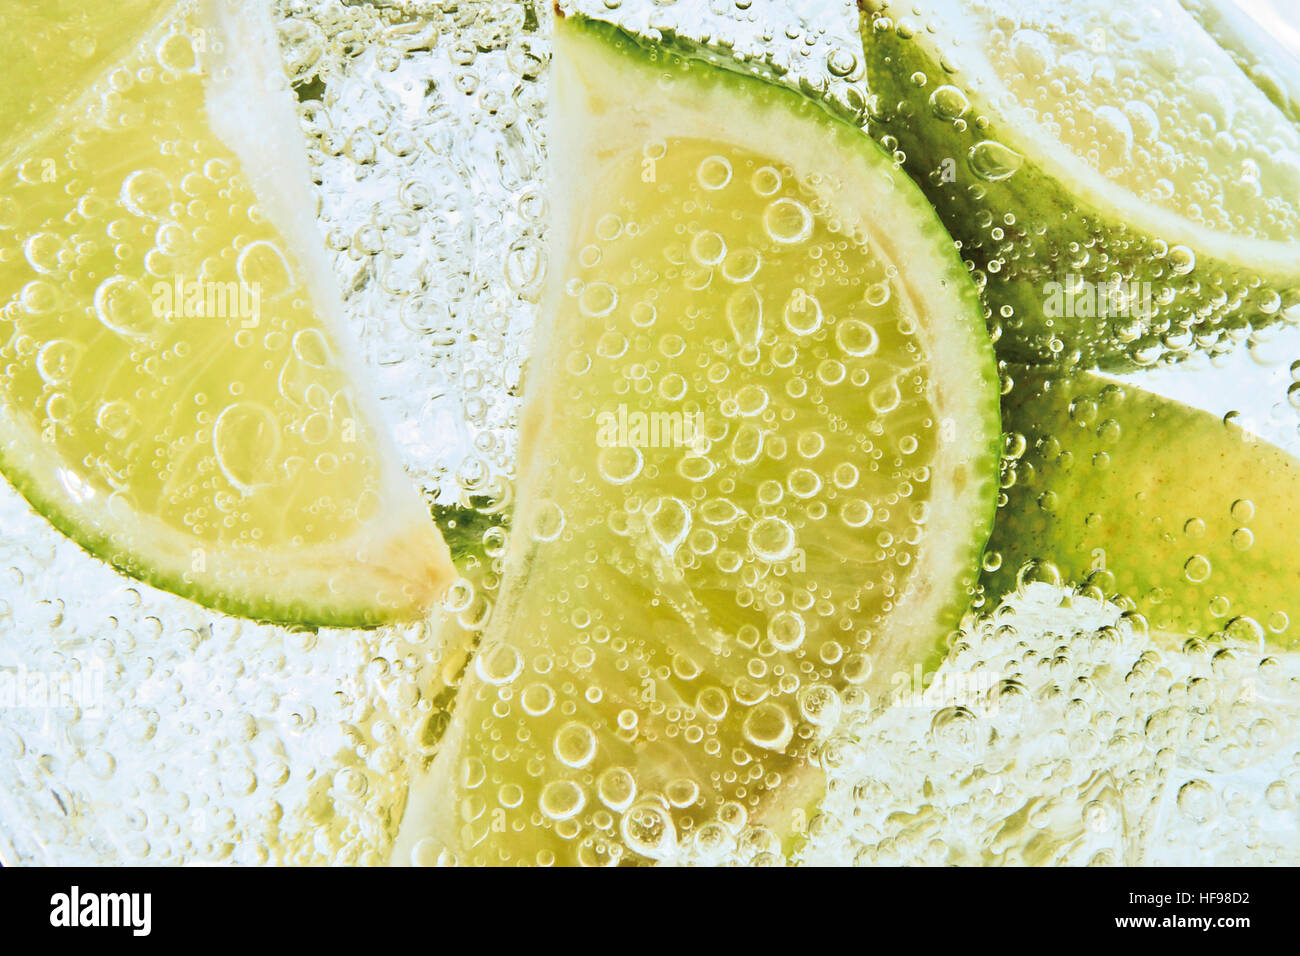 Lime slices in a fizzy drink, close-up Stock Photo